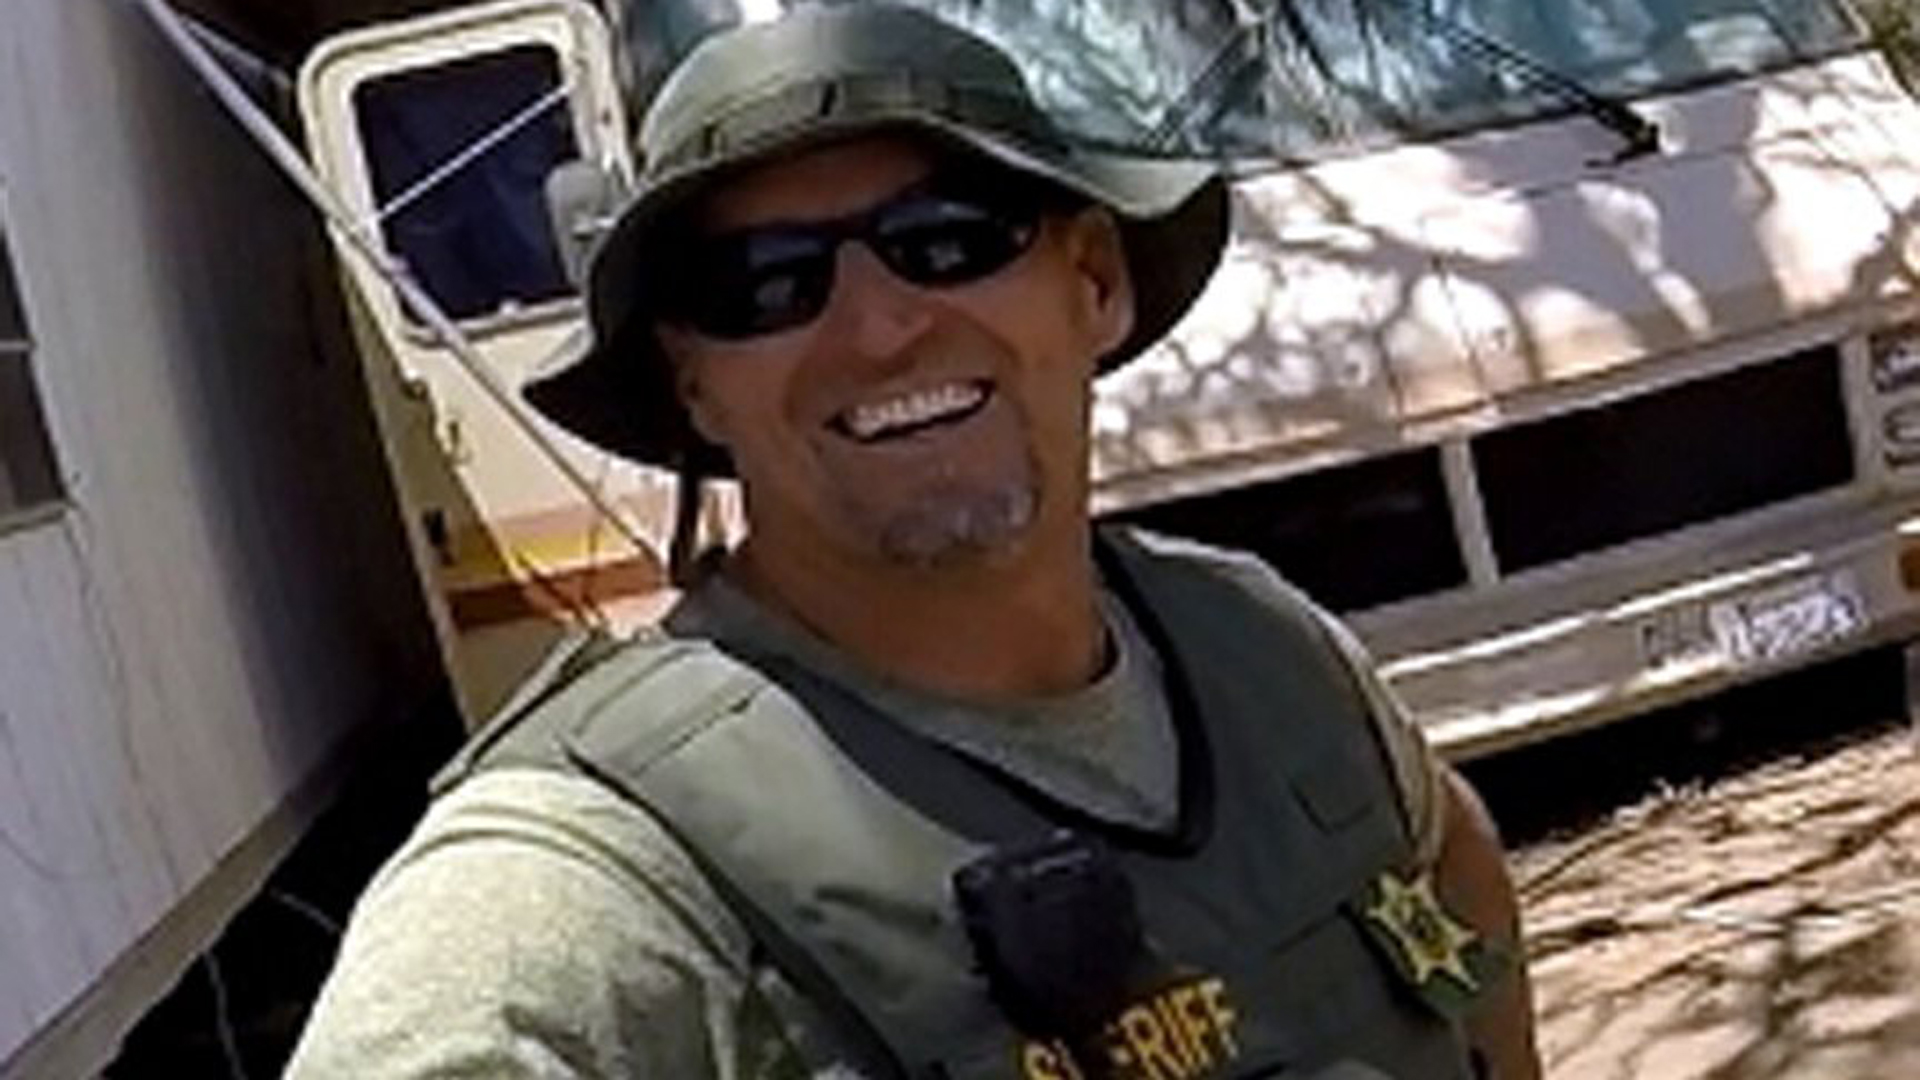 Deputy Sgt. Rod Lucas is seen in a photo released by the Fresno County Sheriff's Office.